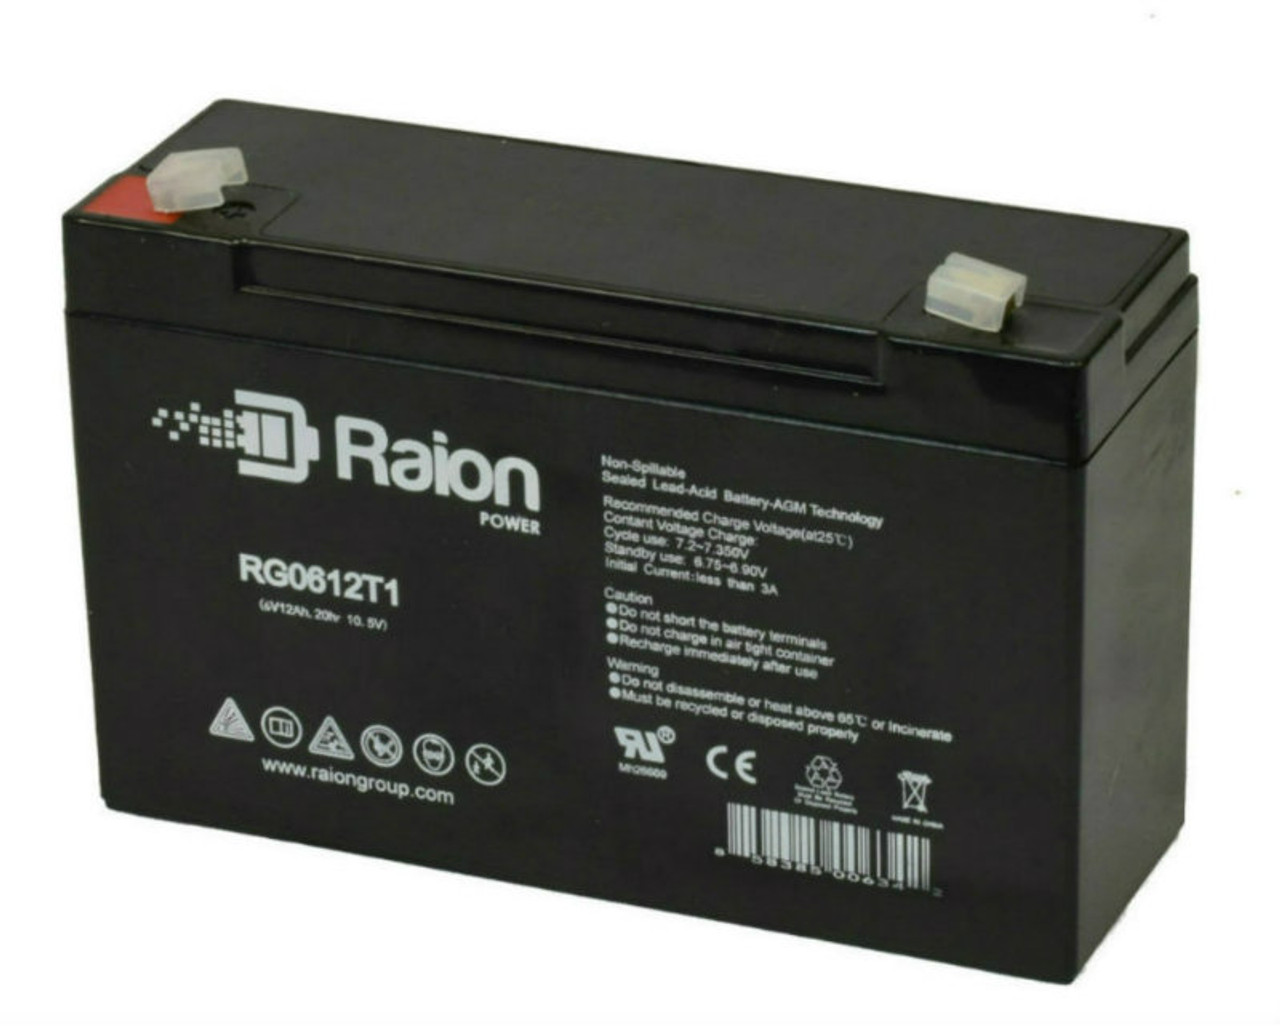 Raion Power RG06120T1 Replacement Battery Pack for Sonnenschein A206/9.5S emergency light